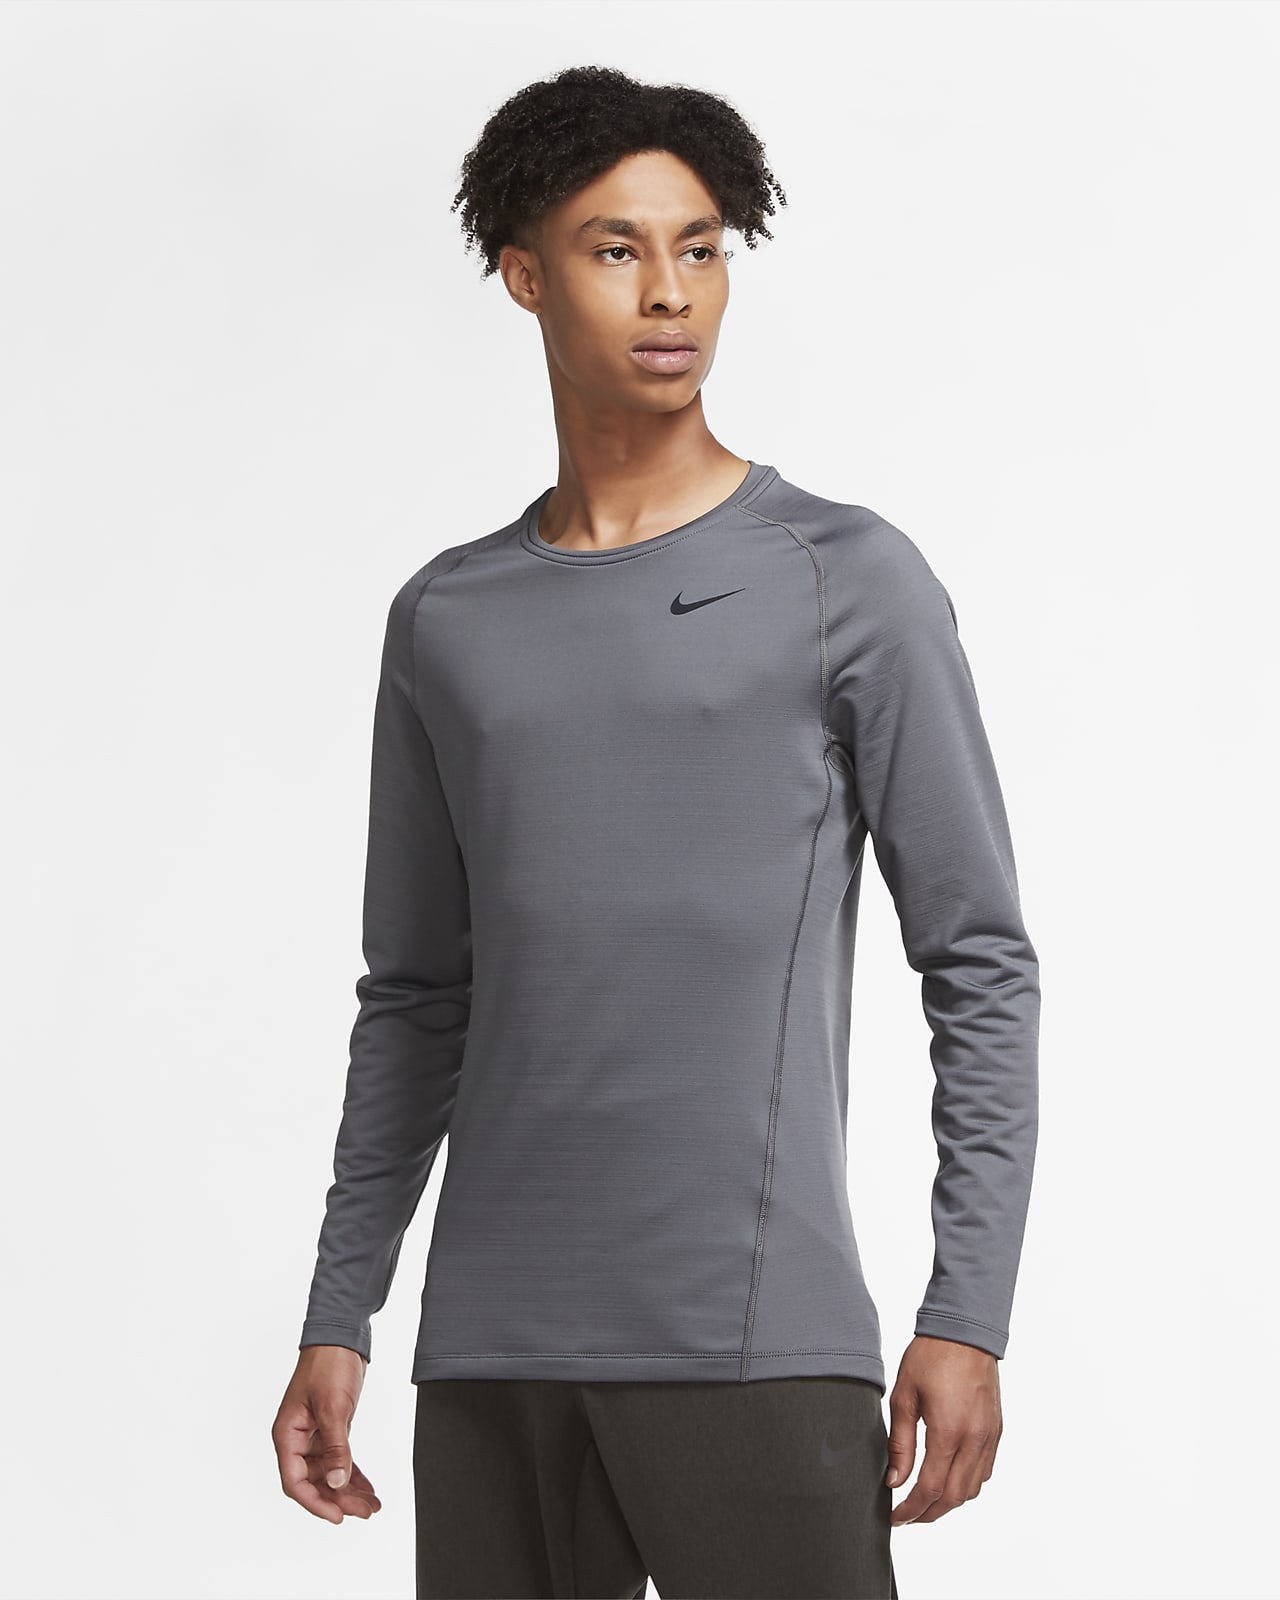 Nike Pro Warm Men's Long-Sleeve Top